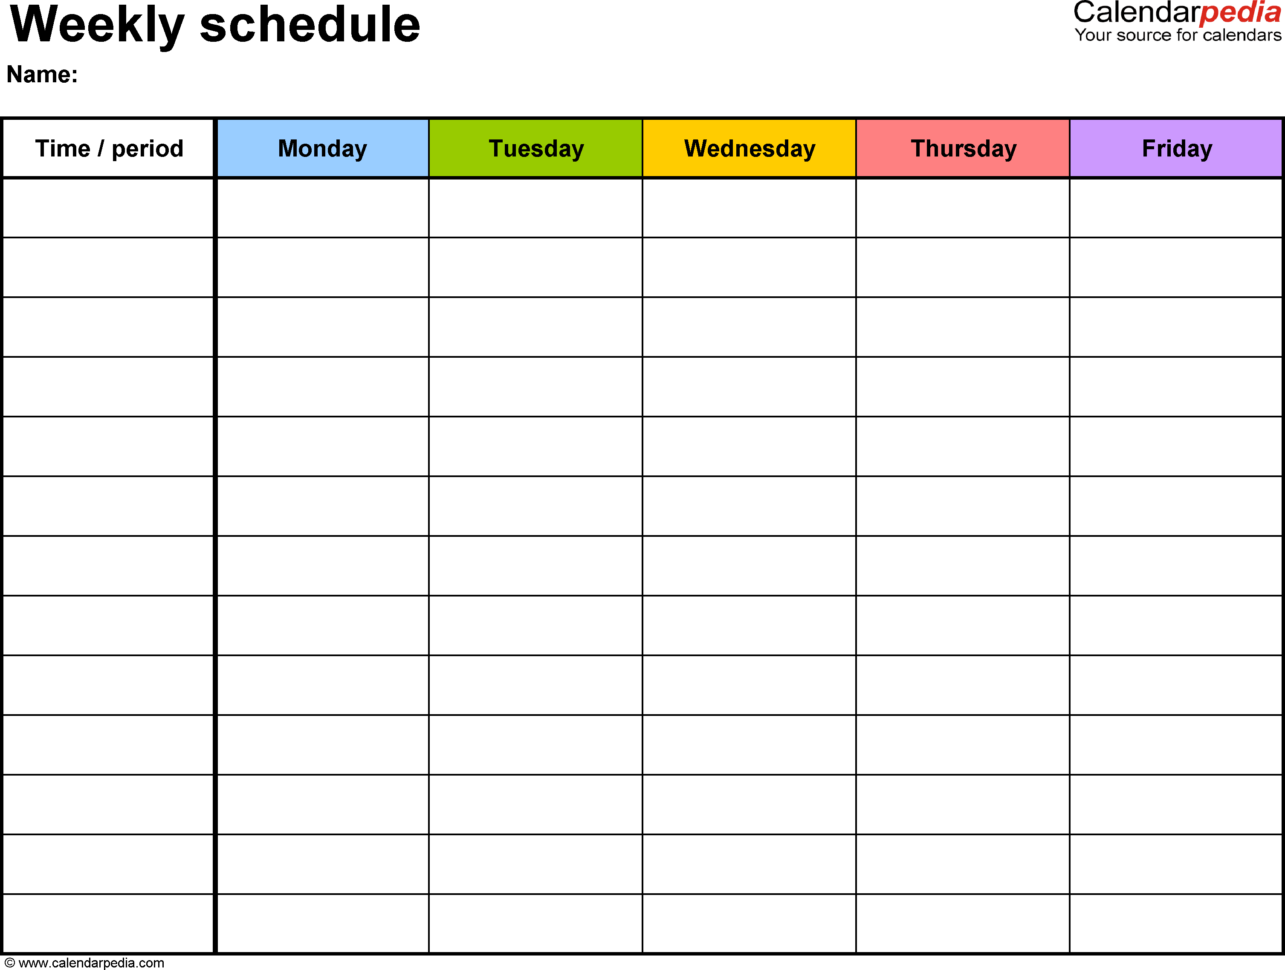 Free Weekly Schedule Templates For Excel   18 Templates For Employee Schedule Excel Spreadsheet